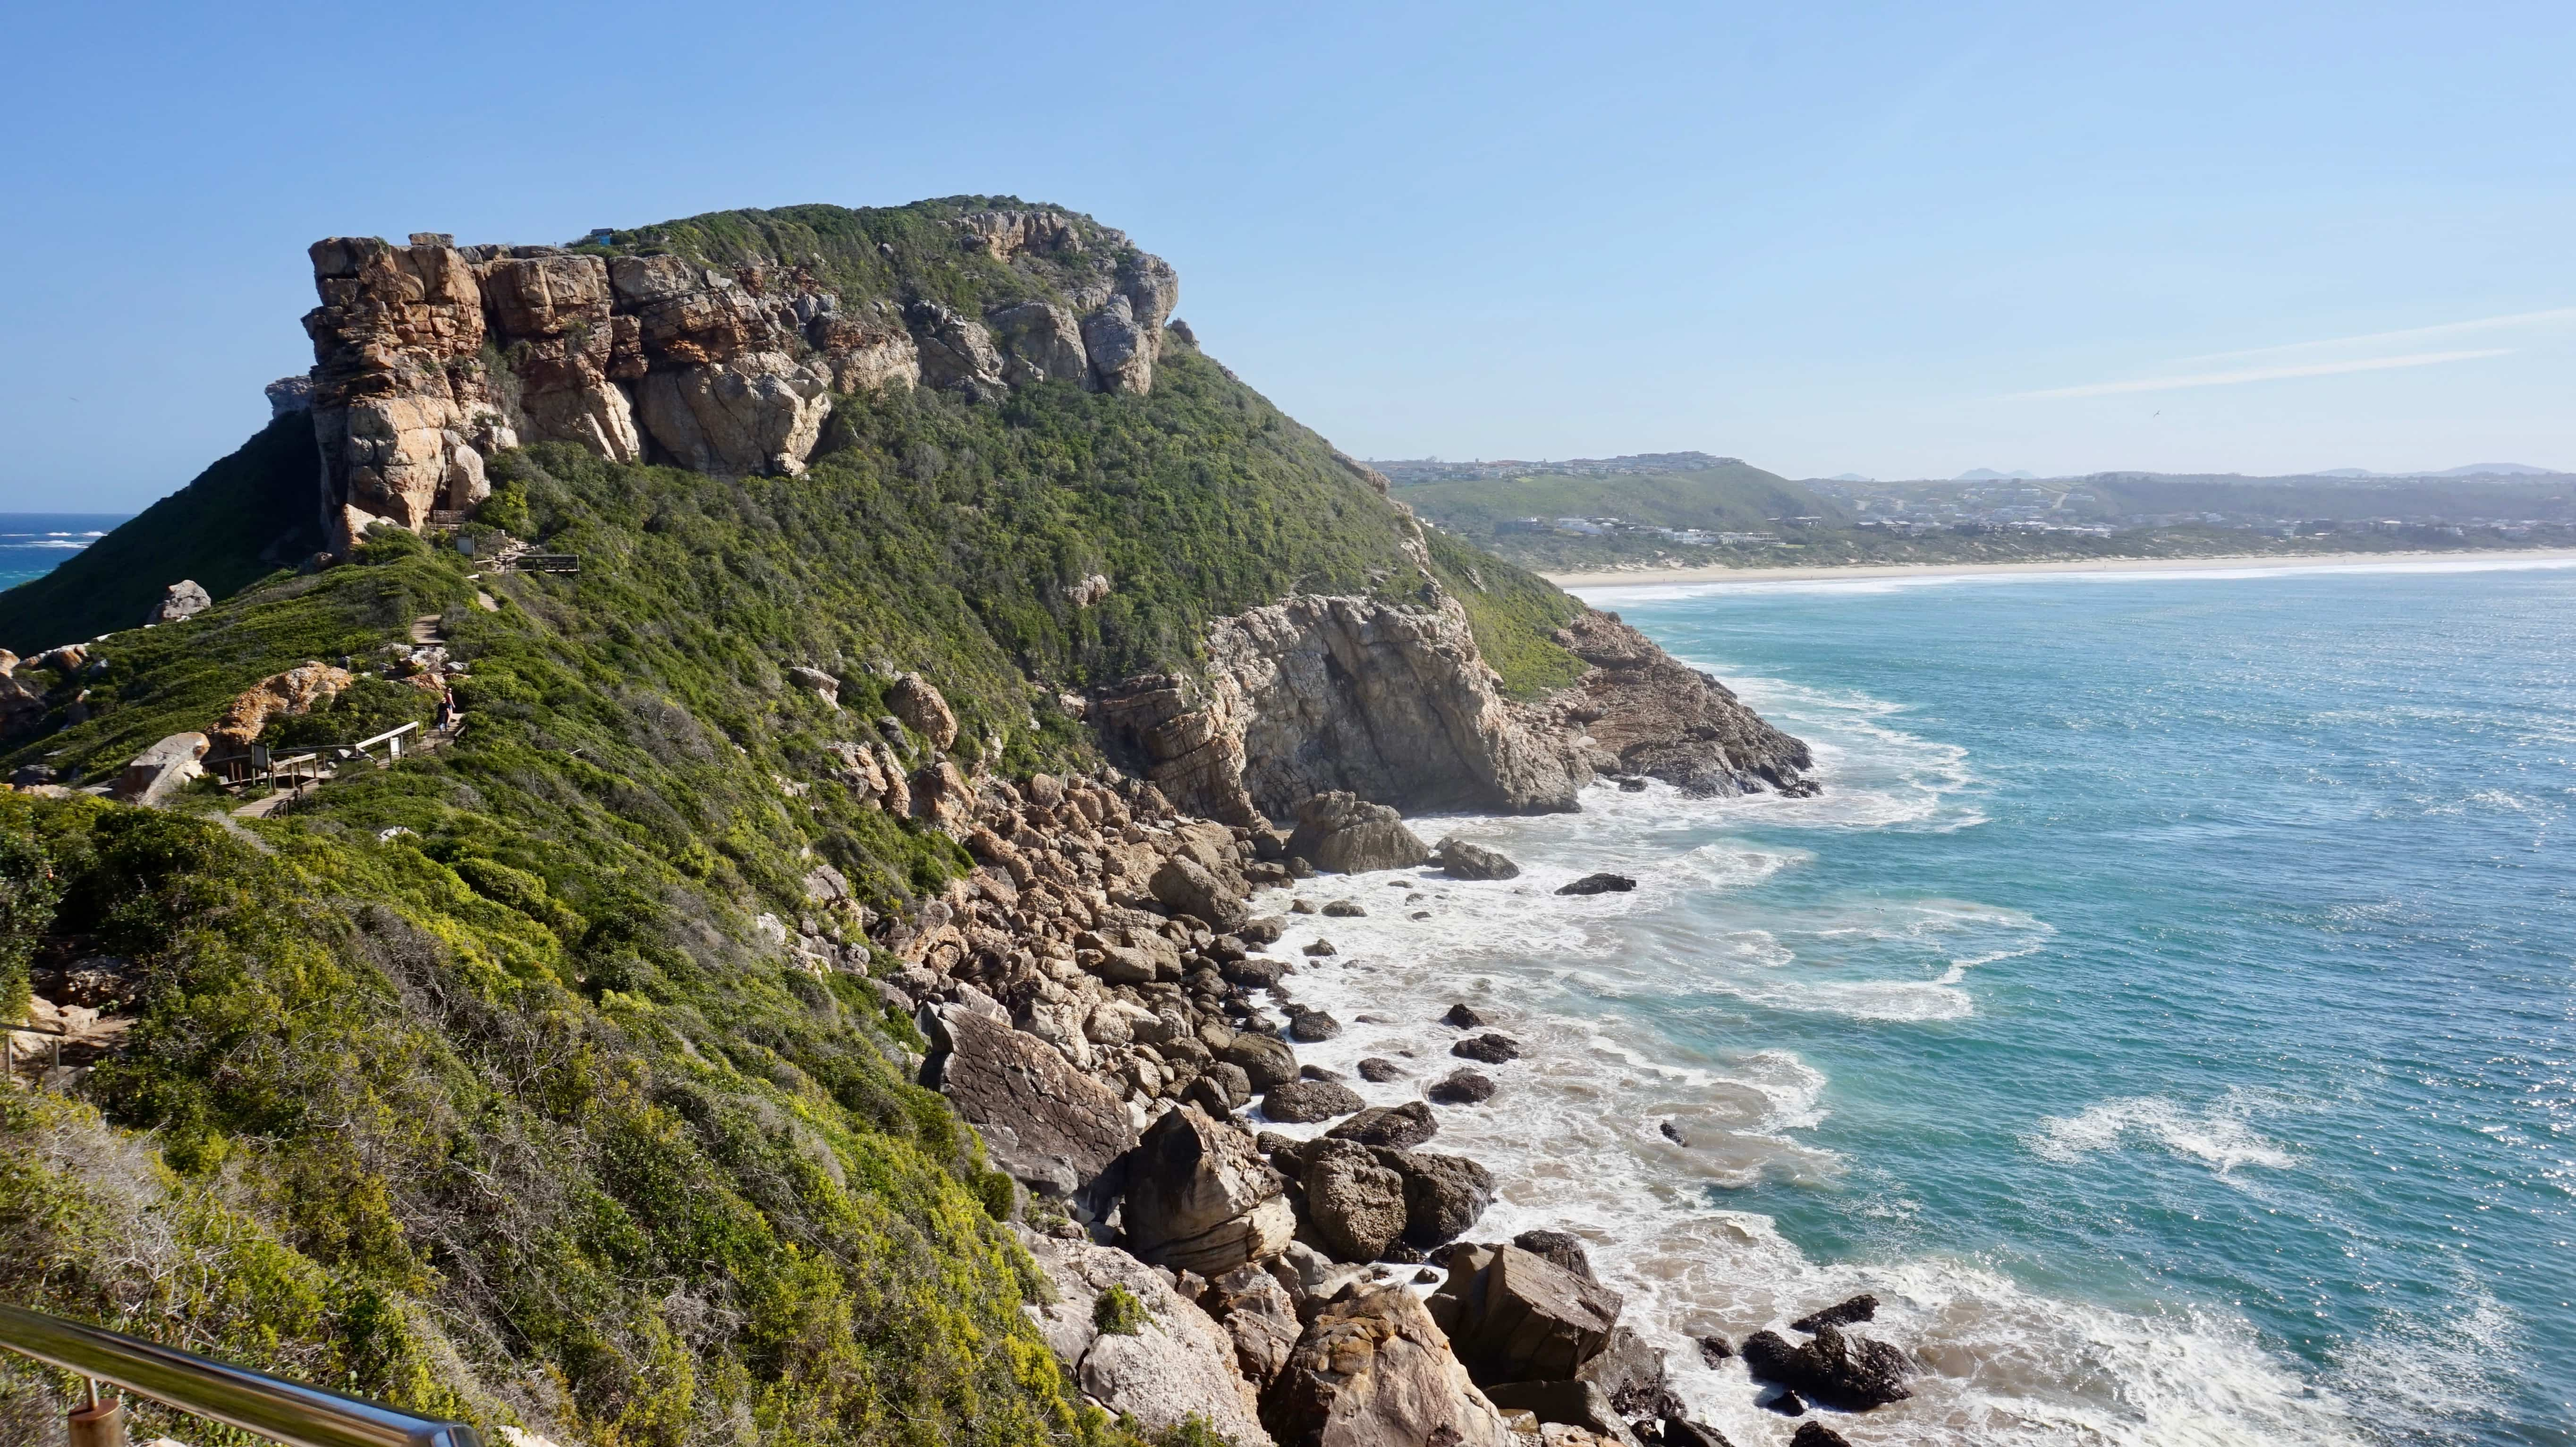 Robberg Nature Reserve cliff-top view